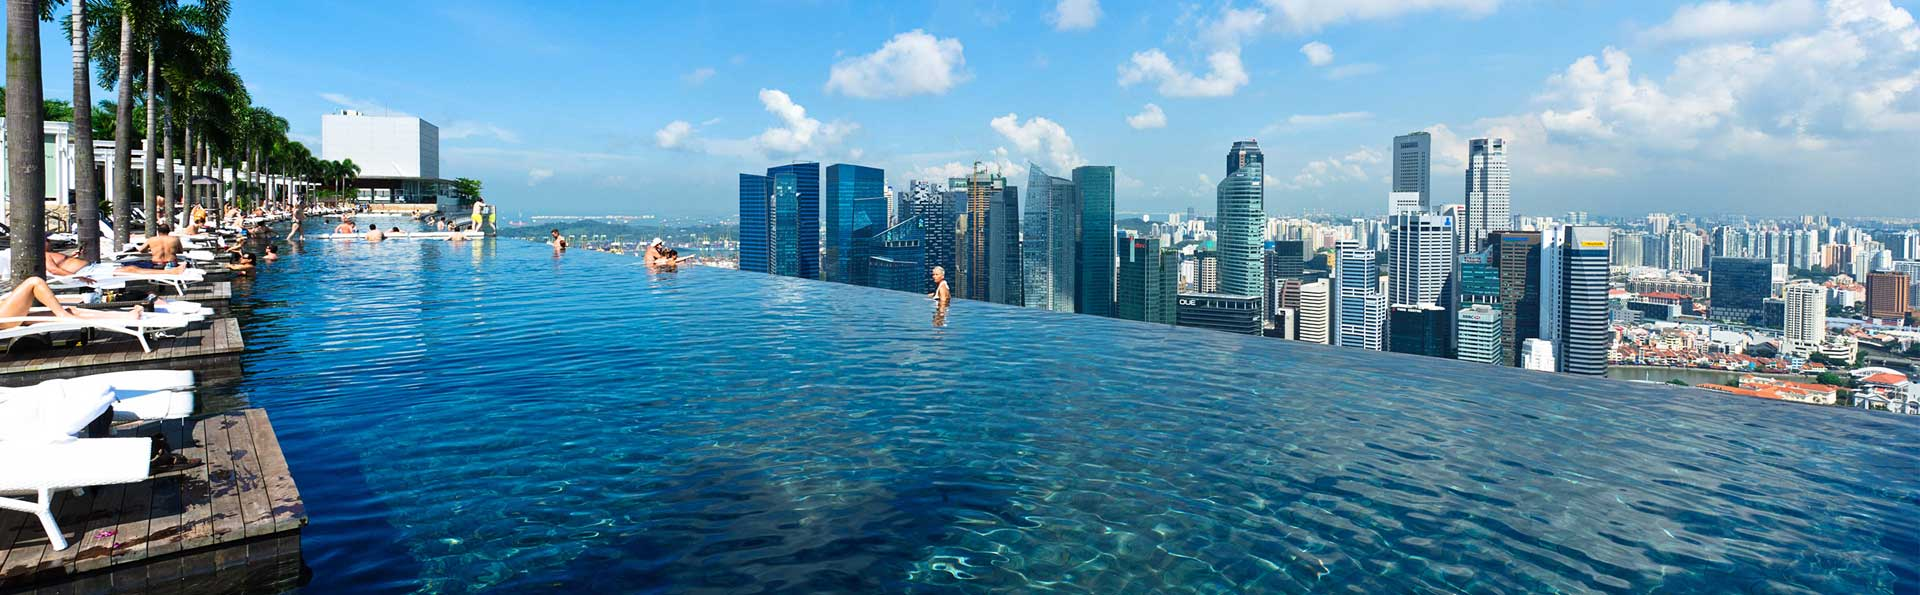 Marina bay sands how to get to the pool